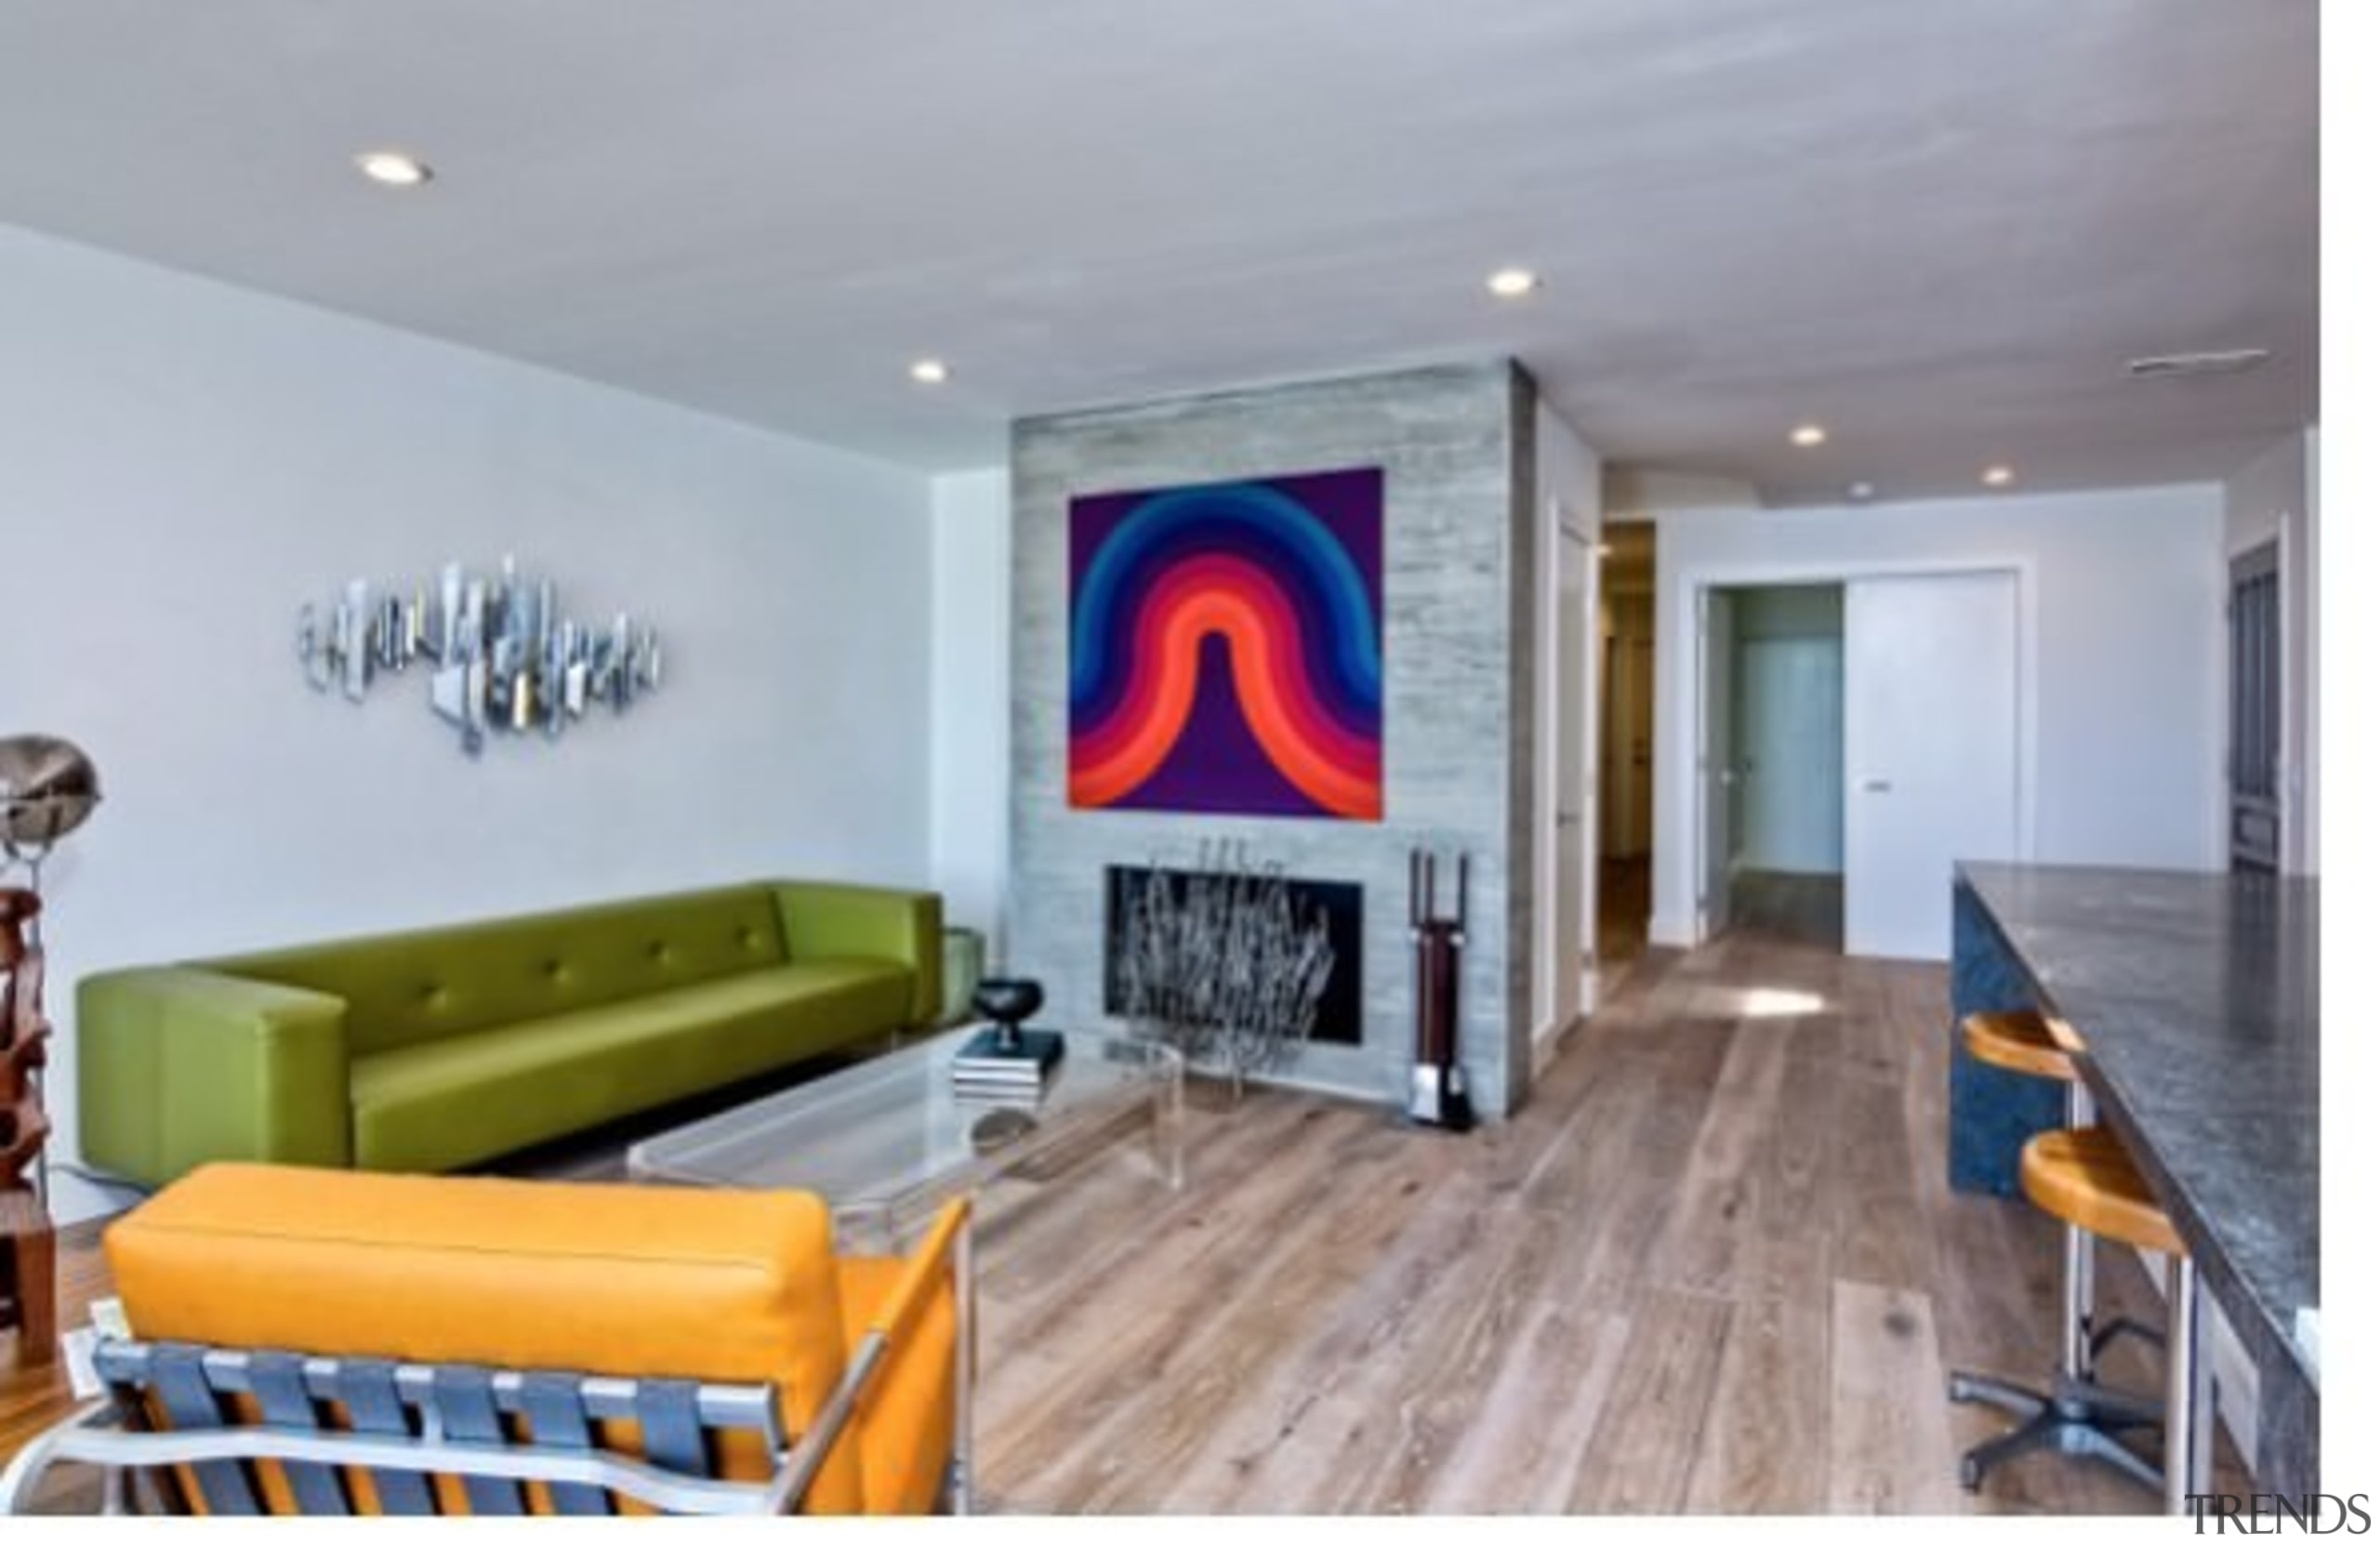 Wood floors run throughout the home - Wood ceiling, home, interior design, living room, property, real estate, room, wall, gray